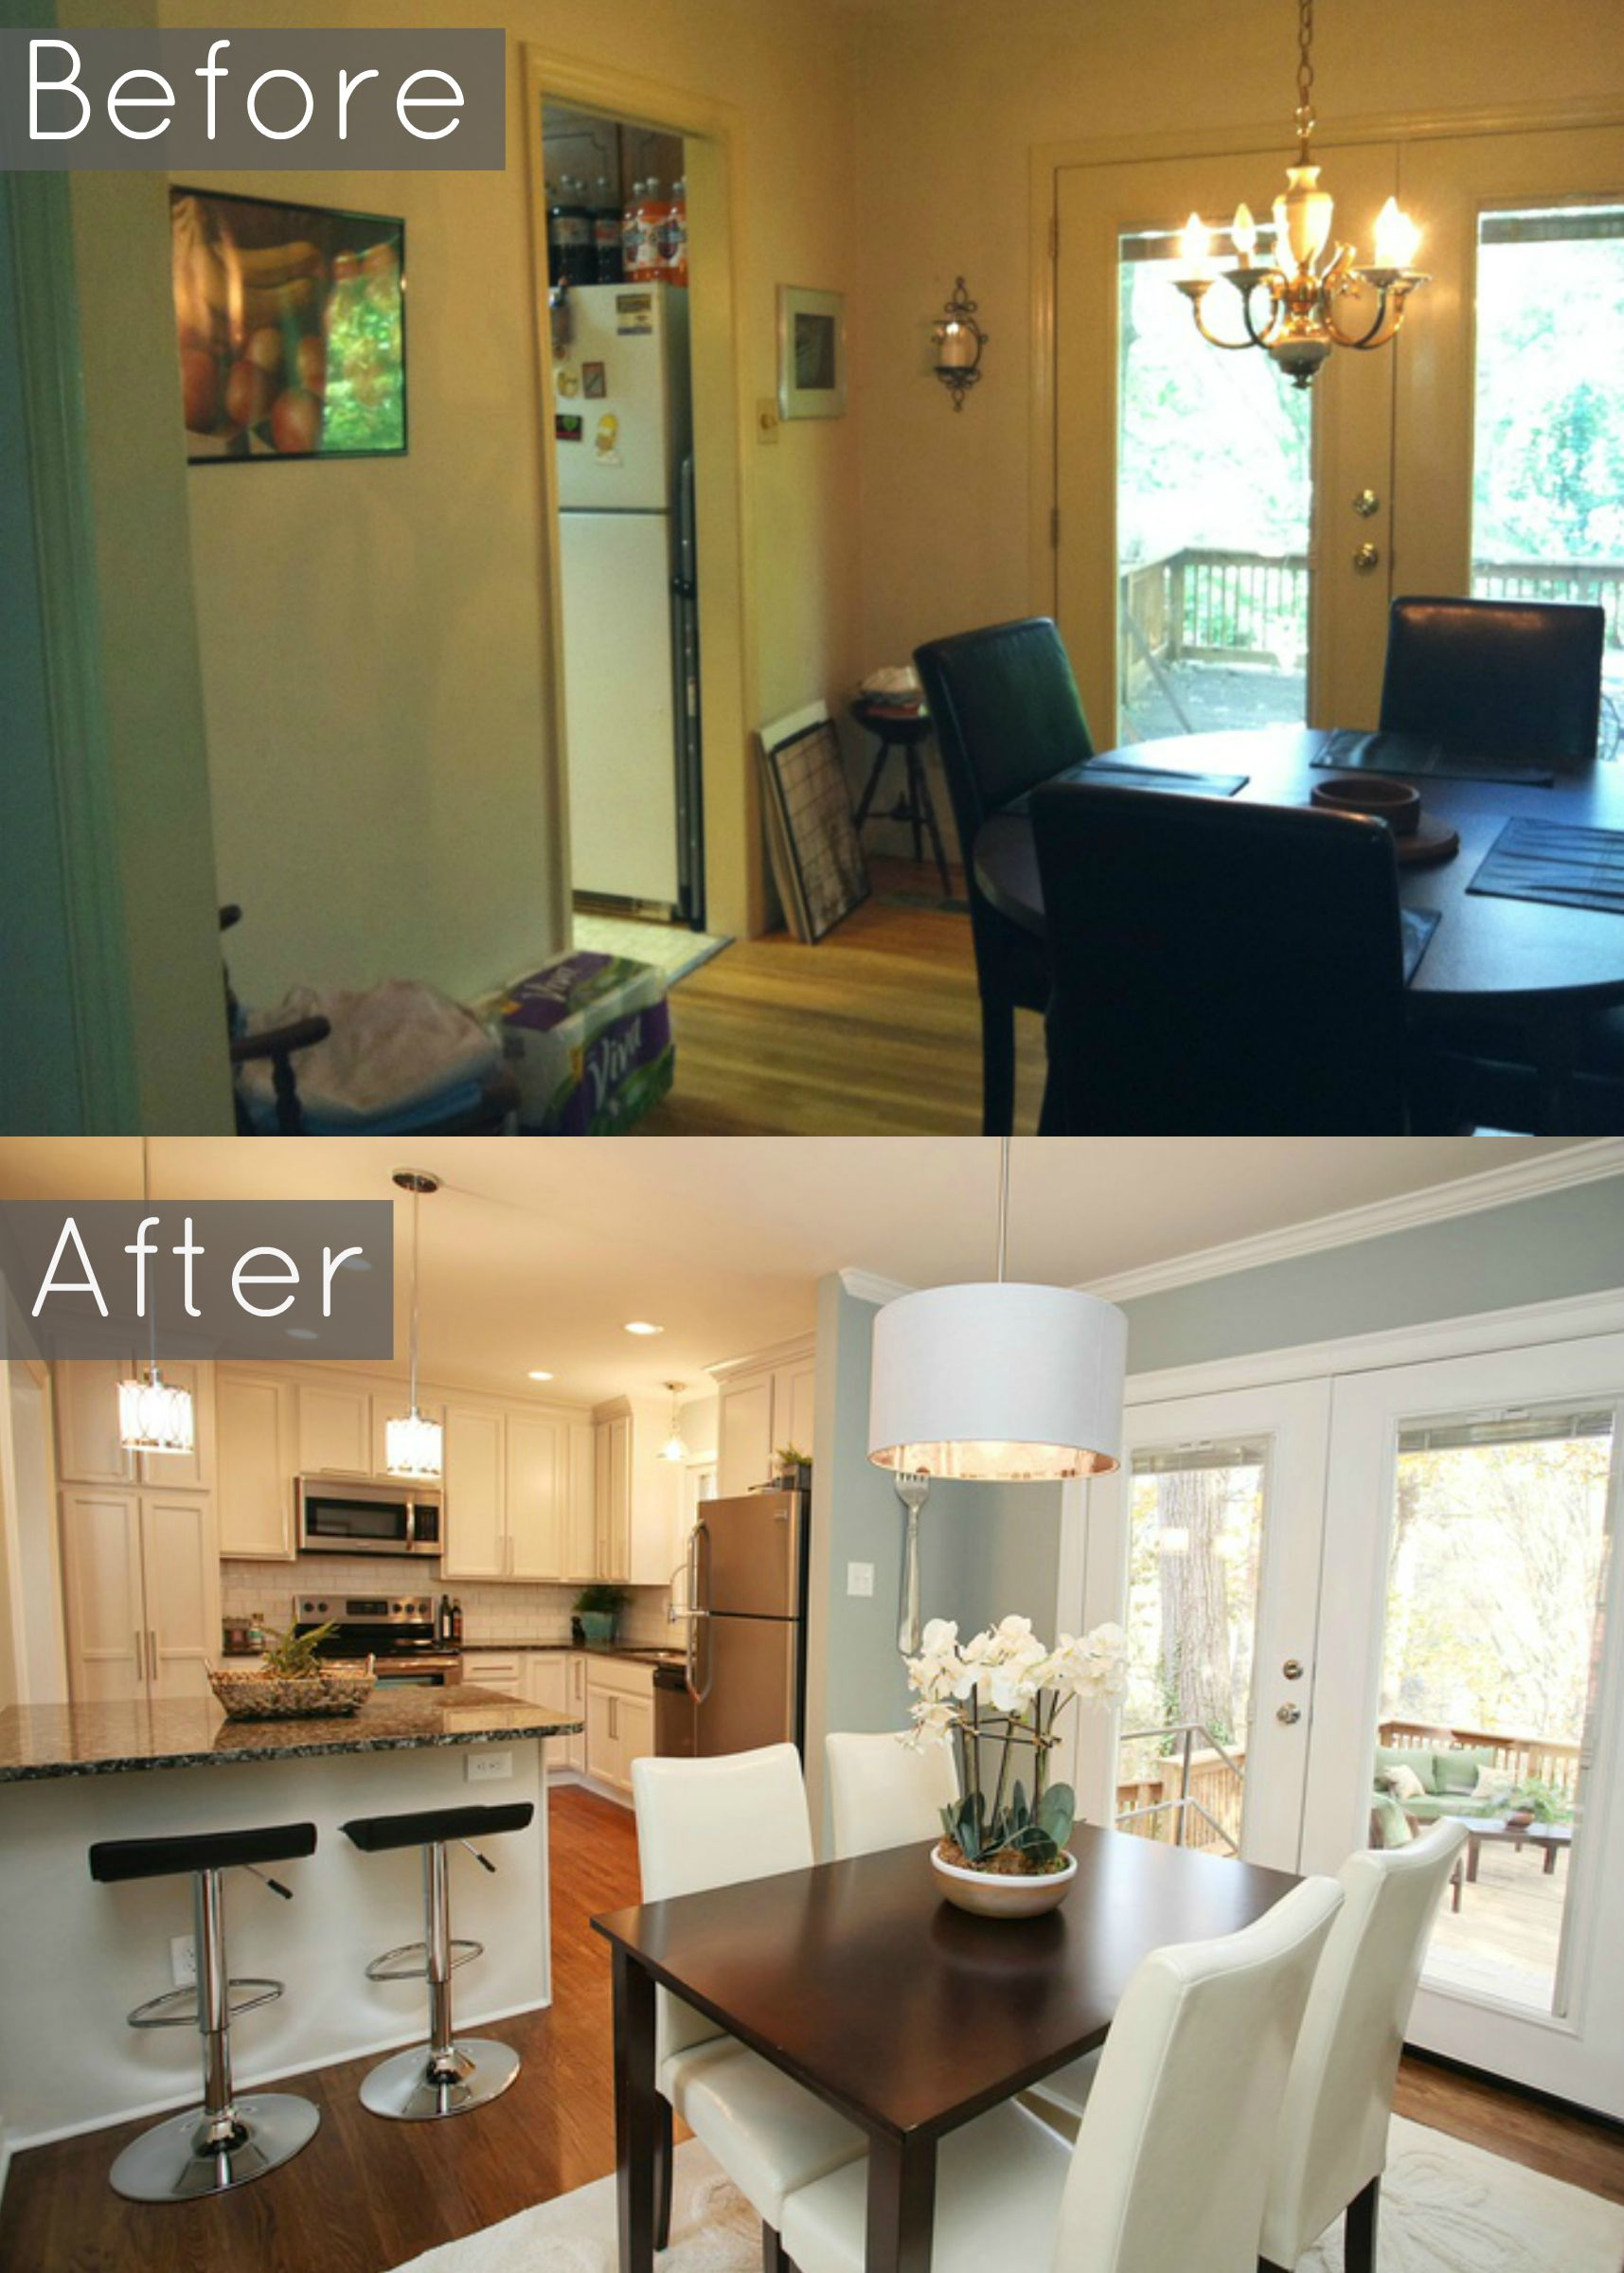 Before And After Pic We Removed Wall Into Dining Room And Created A Large Granite Br Small Kitchen Renovations Kitchen Dining Room Combo Kitchen Remodel Small